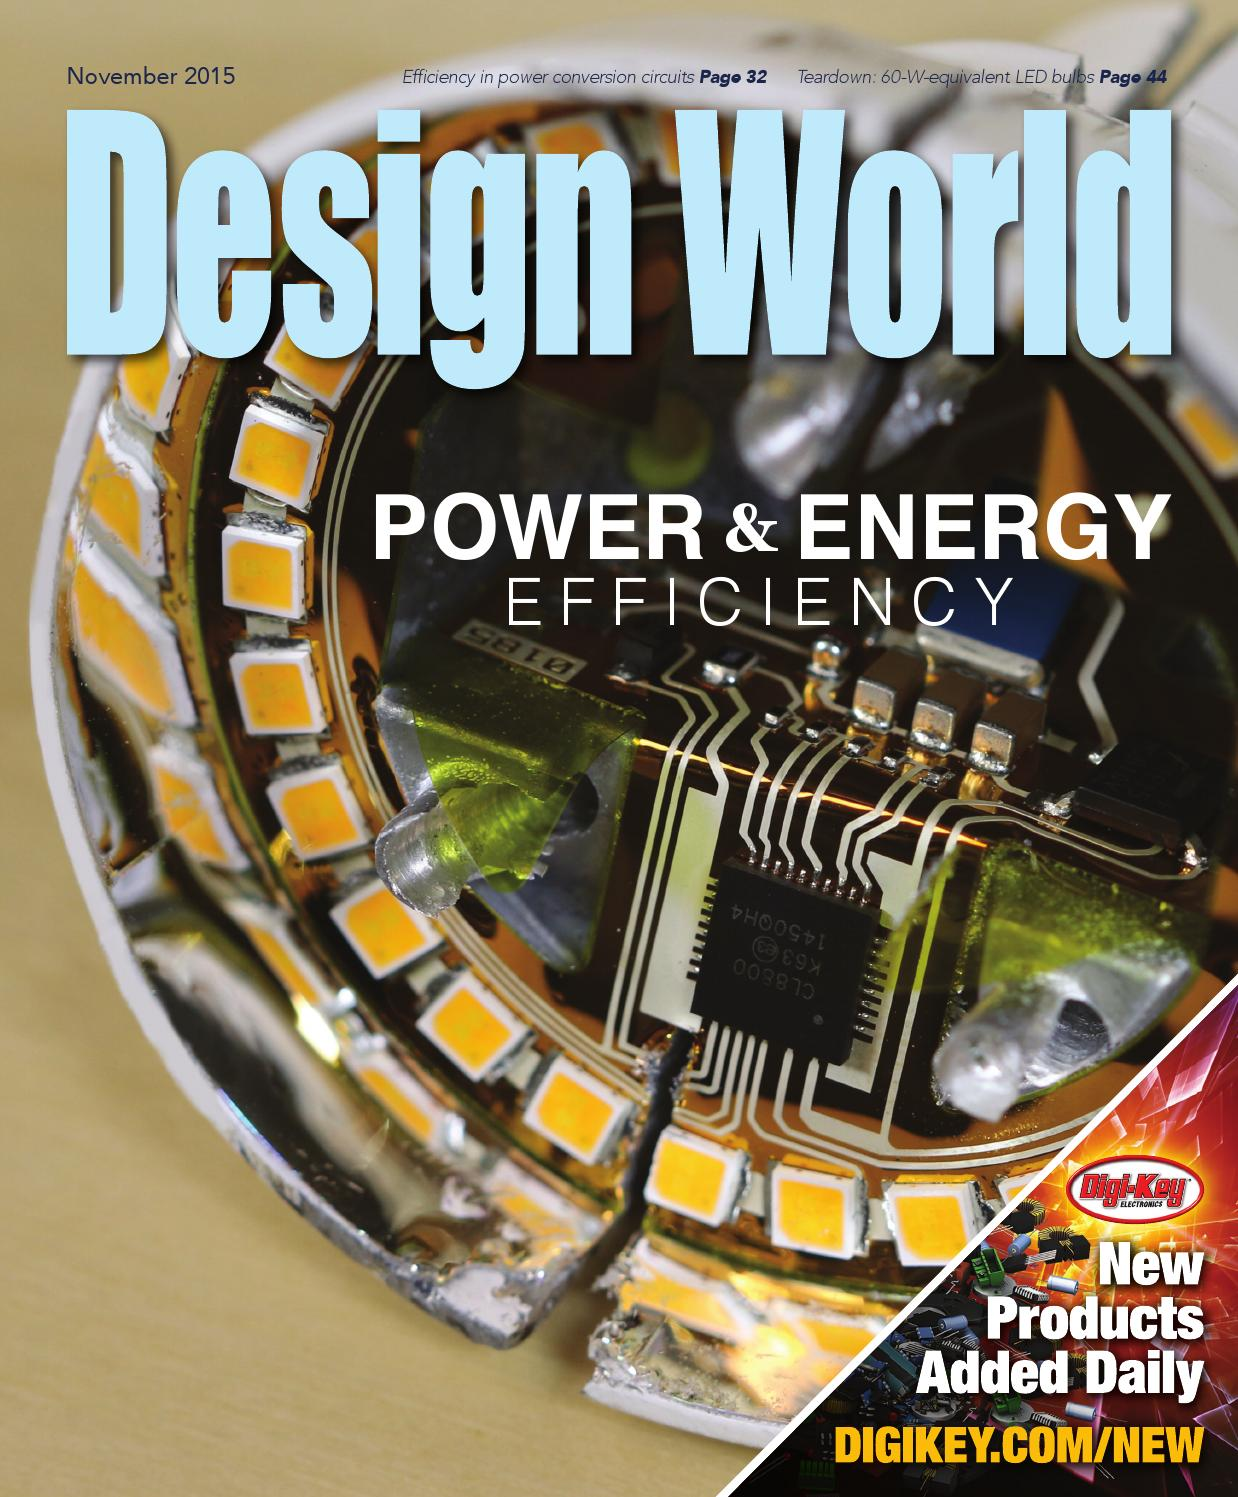 Design World Ee Network Power And Energy Efficiency Handbook By Circuits Microwave Amplifiers Known Good Die Lm Series From Wtwh Media Llc Issuu